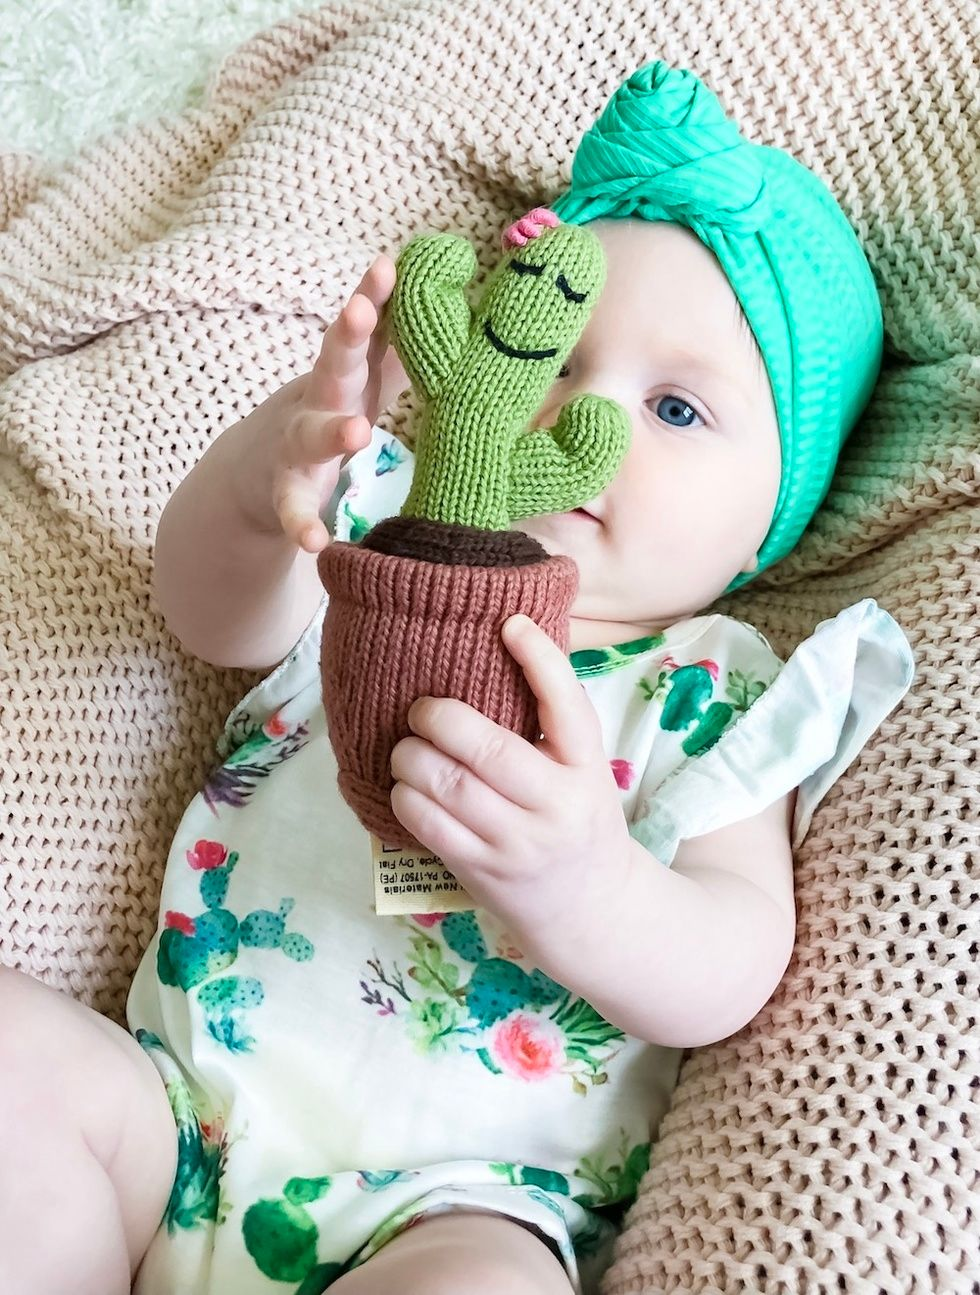 56b3cd117c5b9 Looking for organic baby clothes  Here are the brands we adore ...